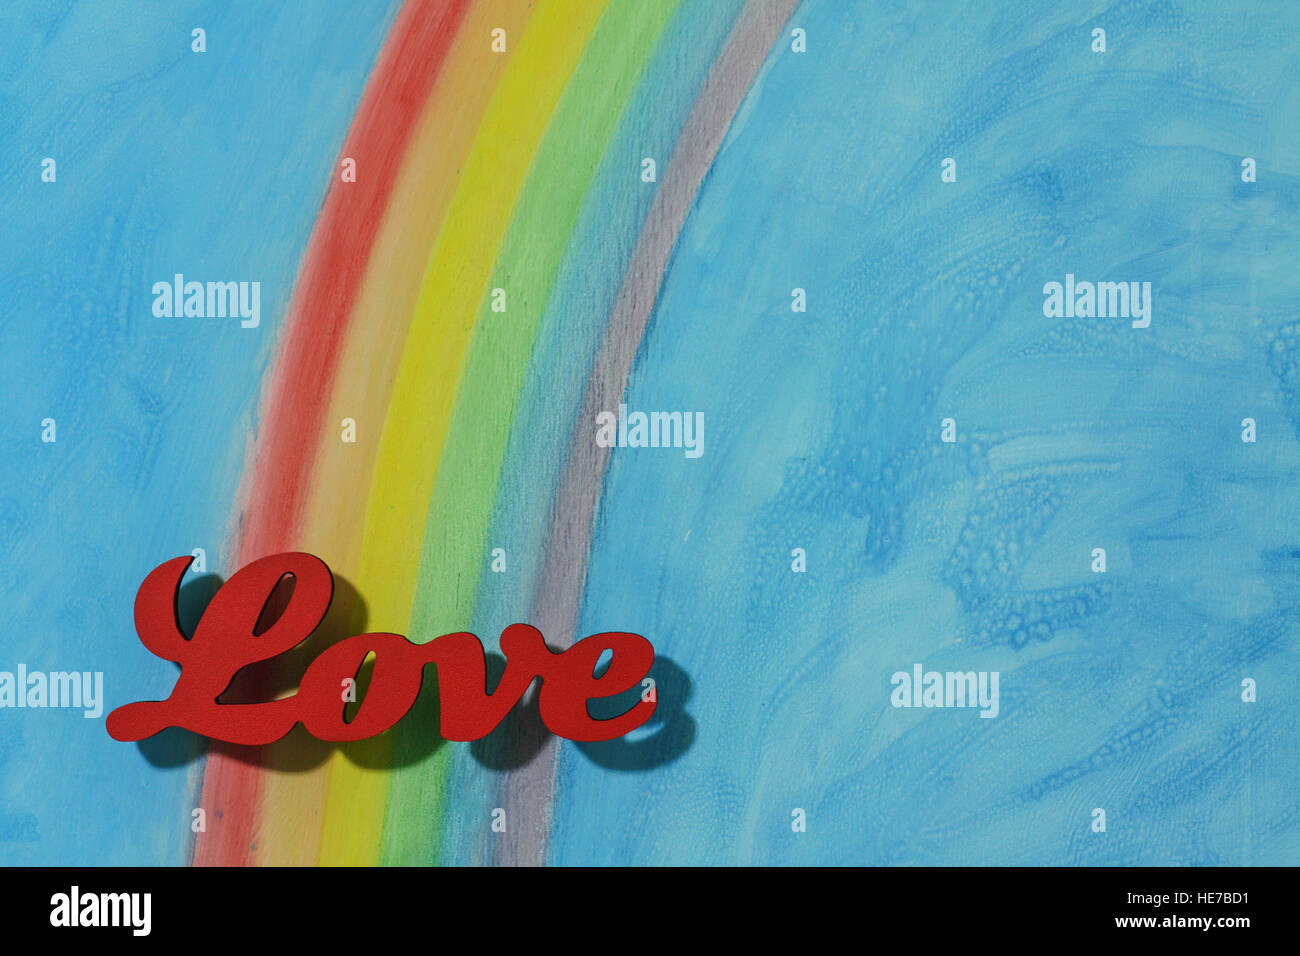 The word love with a background rainbow, illustrating the concept of love, lust, desire and joy in a landscape format. - Stock Image